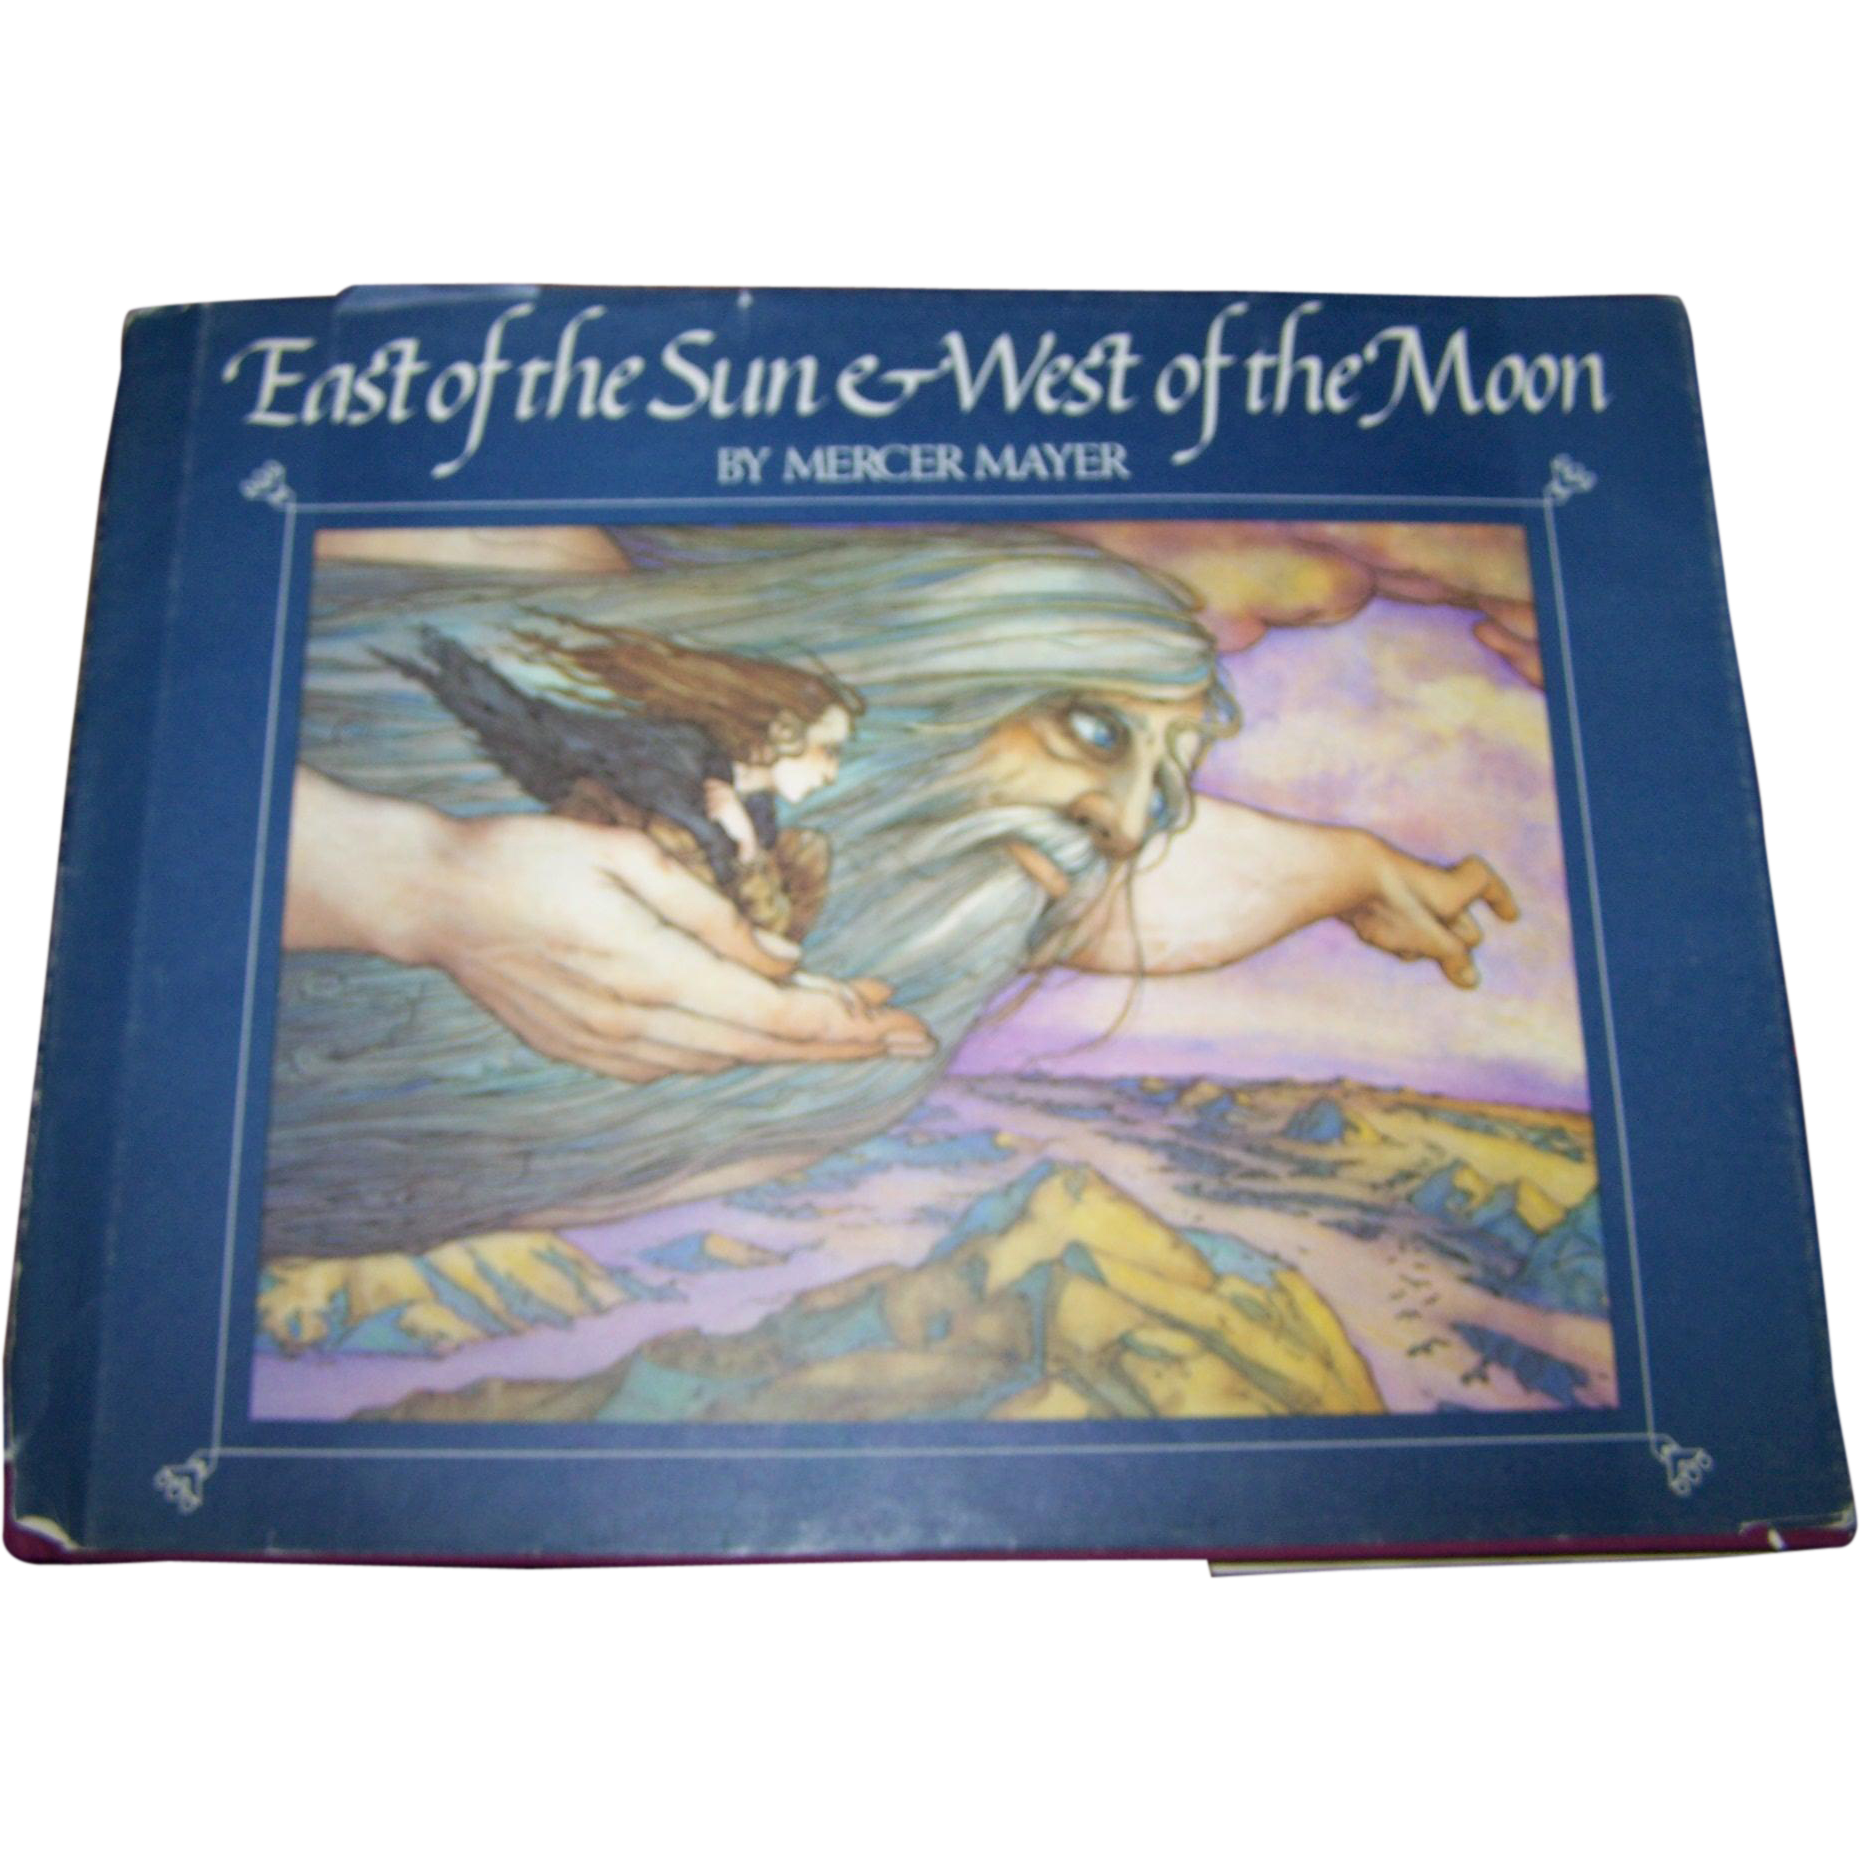 """Vintage Hard Cover Children's Book """" East of the Sun & West of the Moon""""  By Mercer Mayer"""